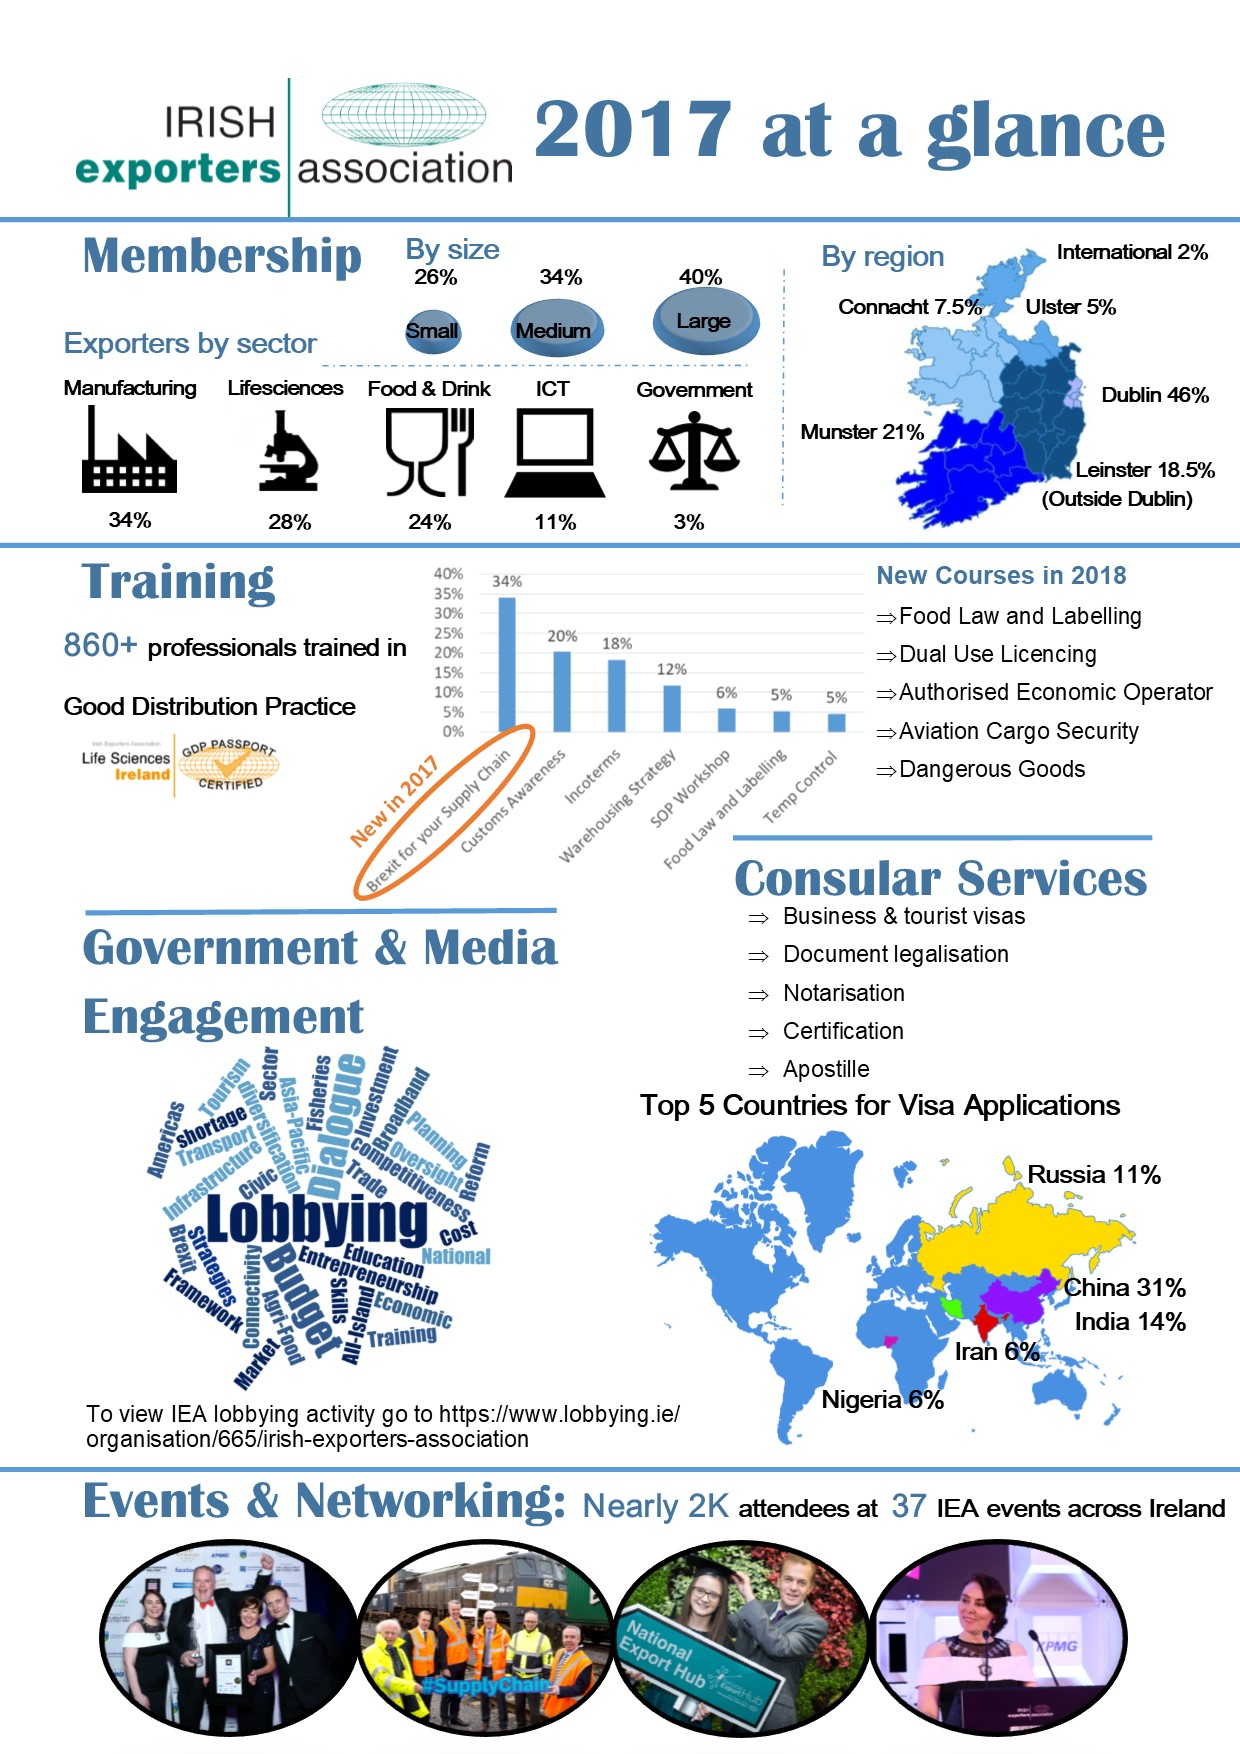 IEA Year at a Glance 2017 Infographic